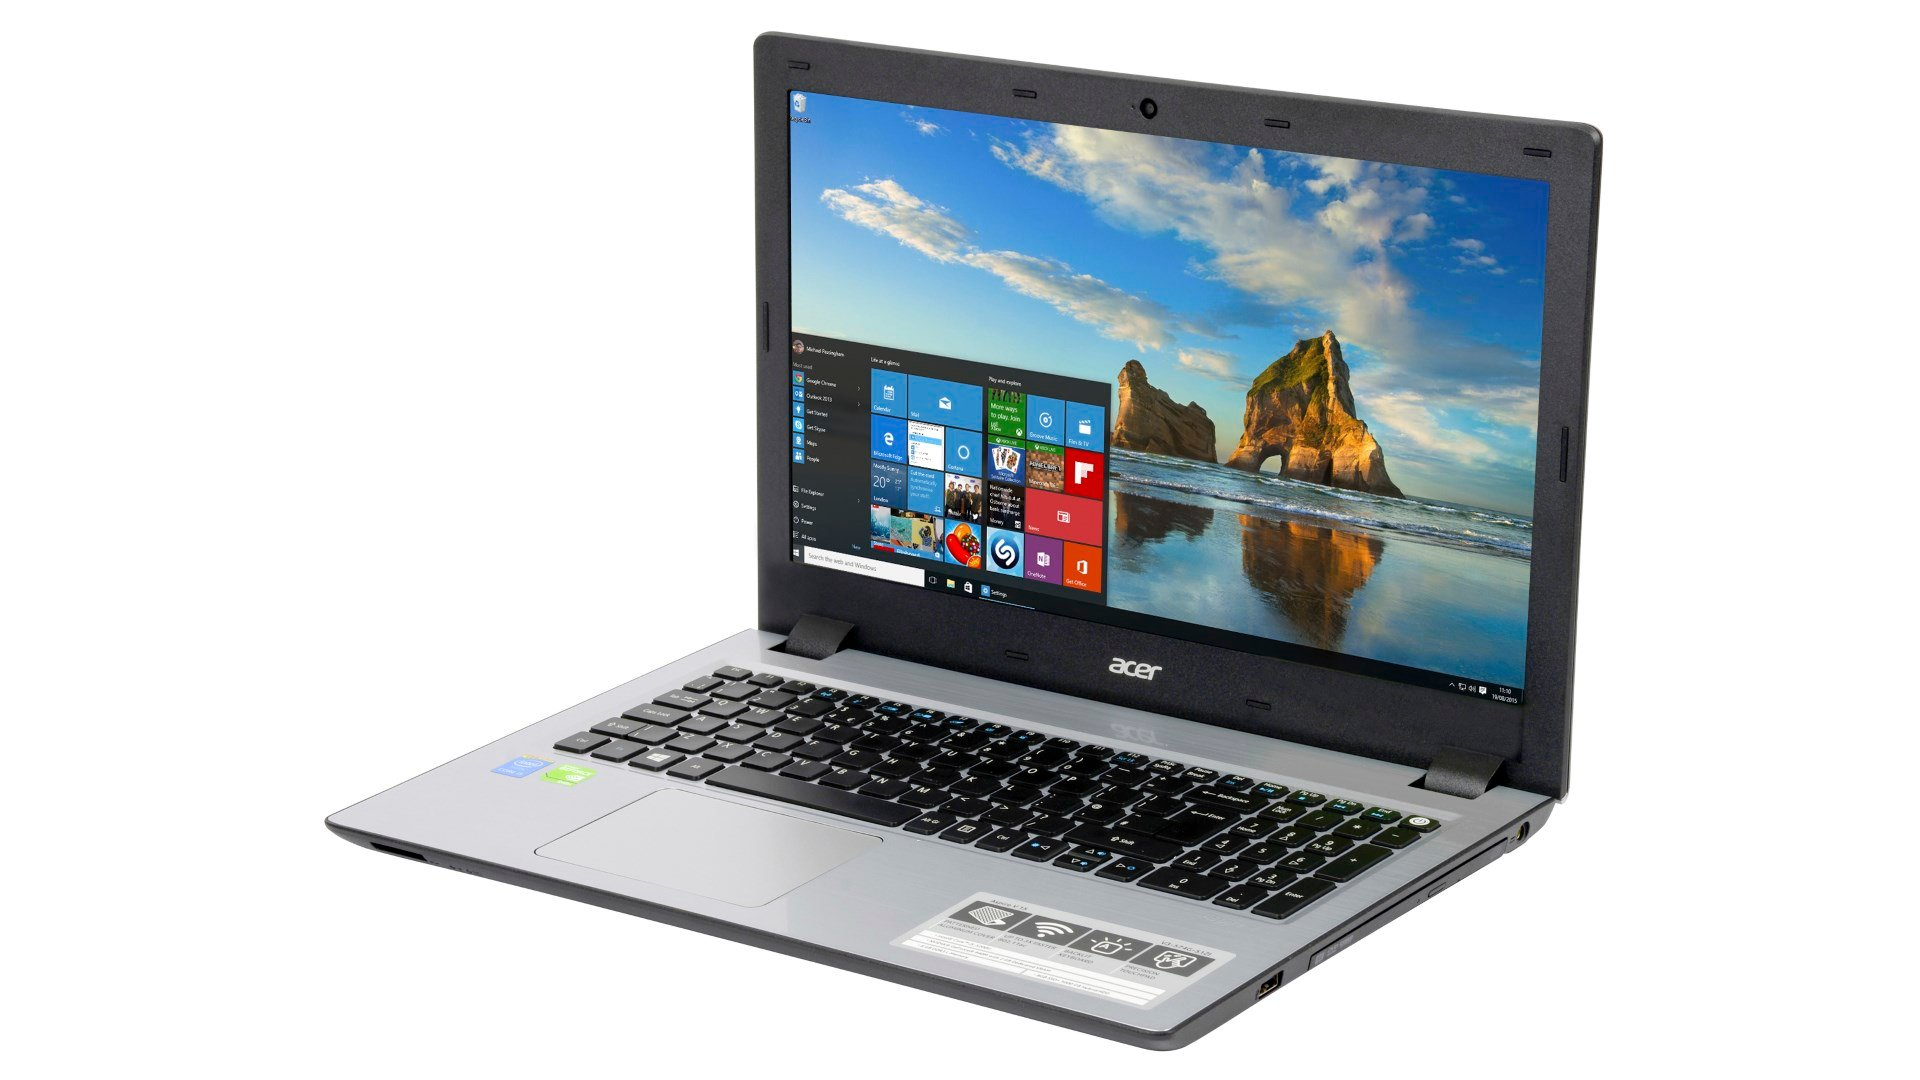 ACER ASPIRE V3-574G INTEL BLUETOOTH DRIVER FOR WINDOWS 7